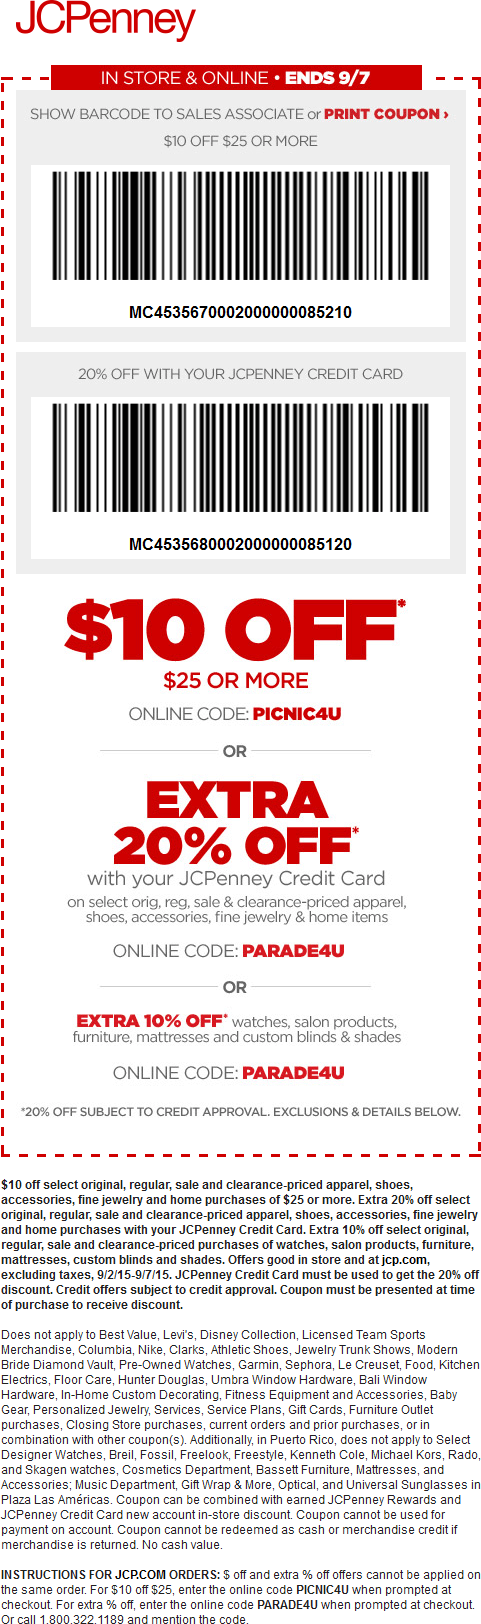 JCPenney Coupon May 2018 $10 off $25 at JCPenney, or online via promo code PICNIC4U